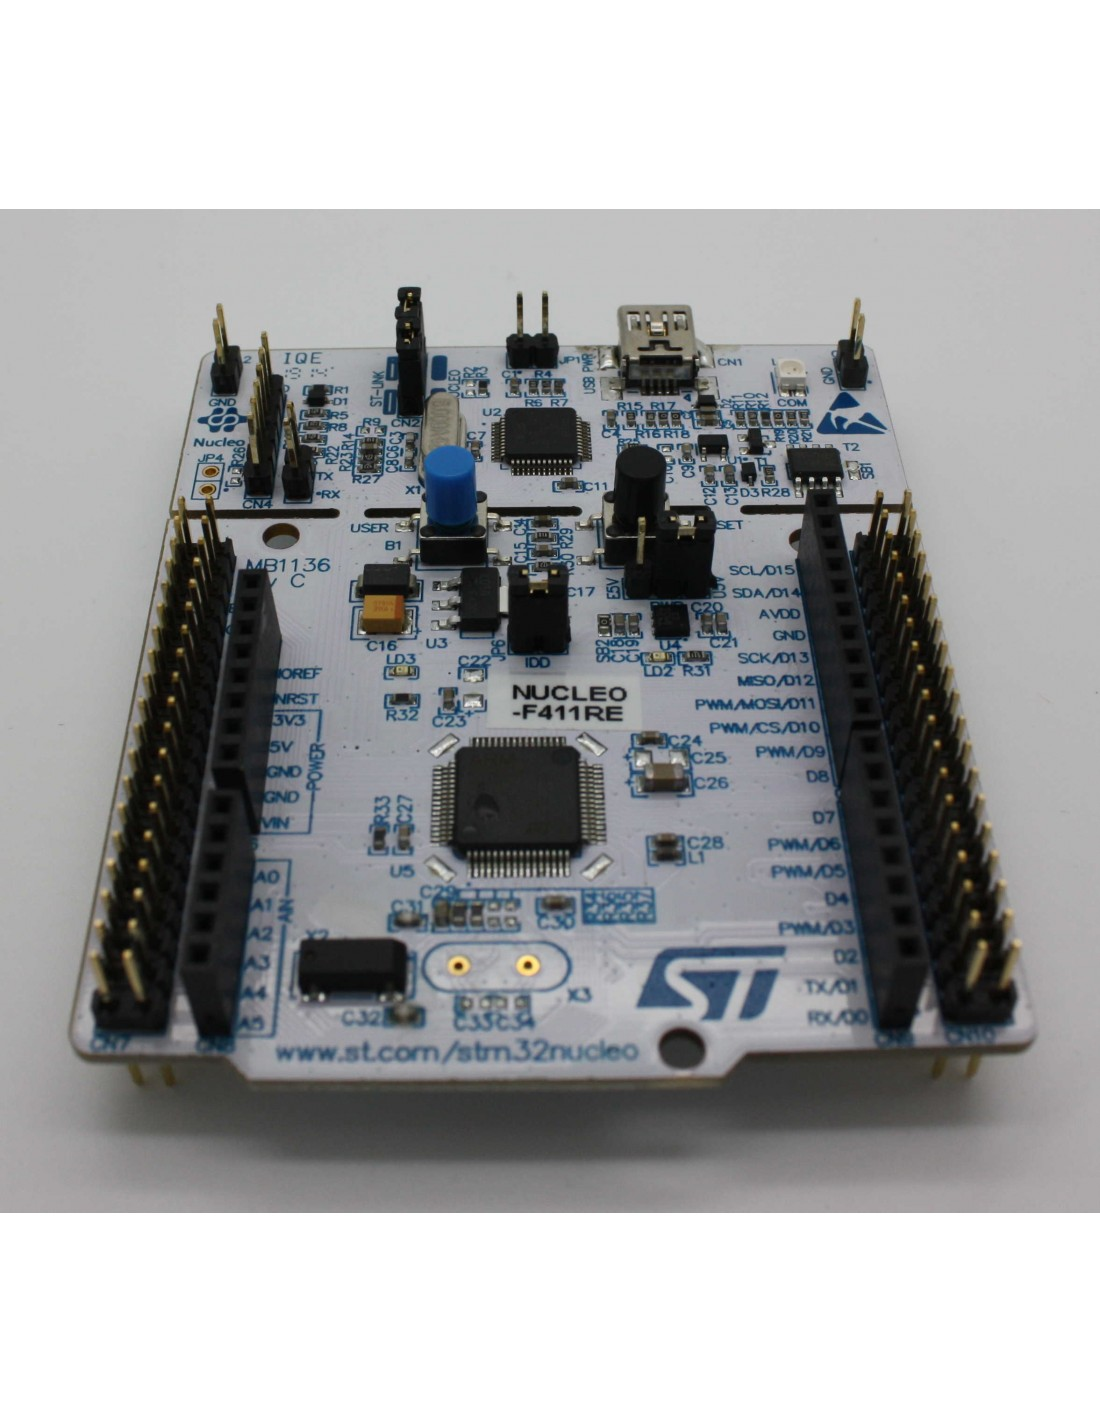 NUCLEO-F411RE (STM32 Nucleo development board for STM32 F4 series